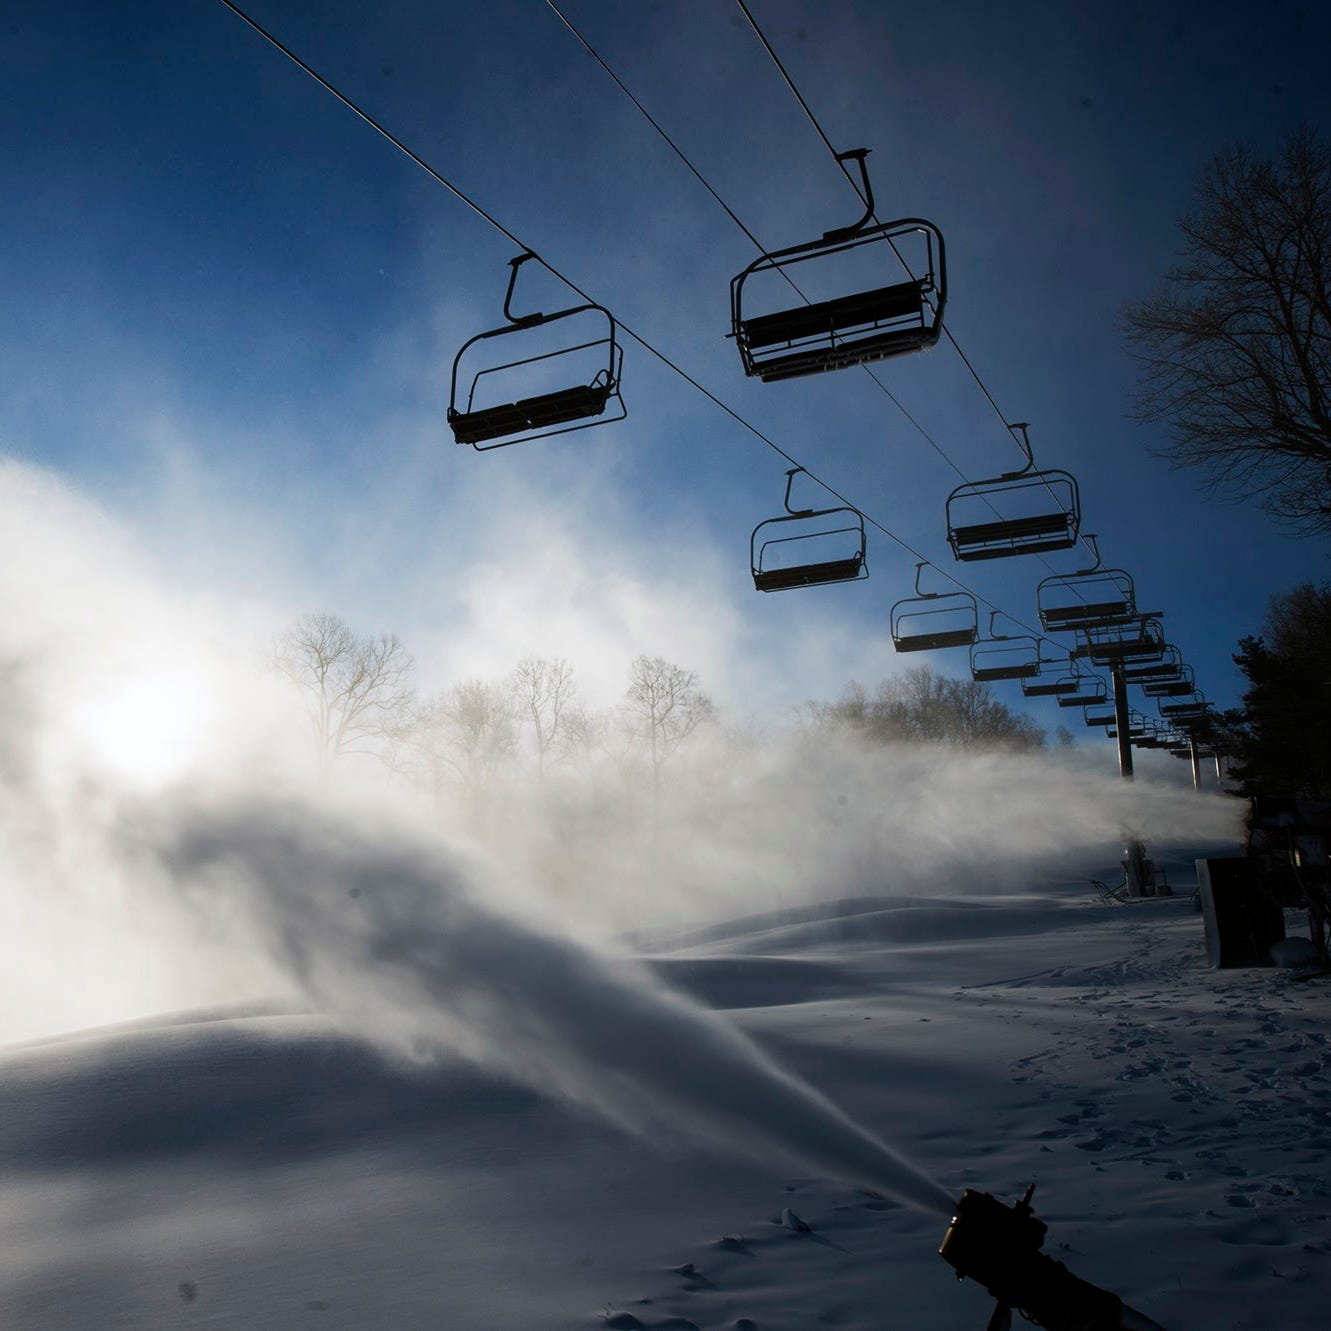 Want to hit the ski slopes? Here are some options in central Pennsylvania